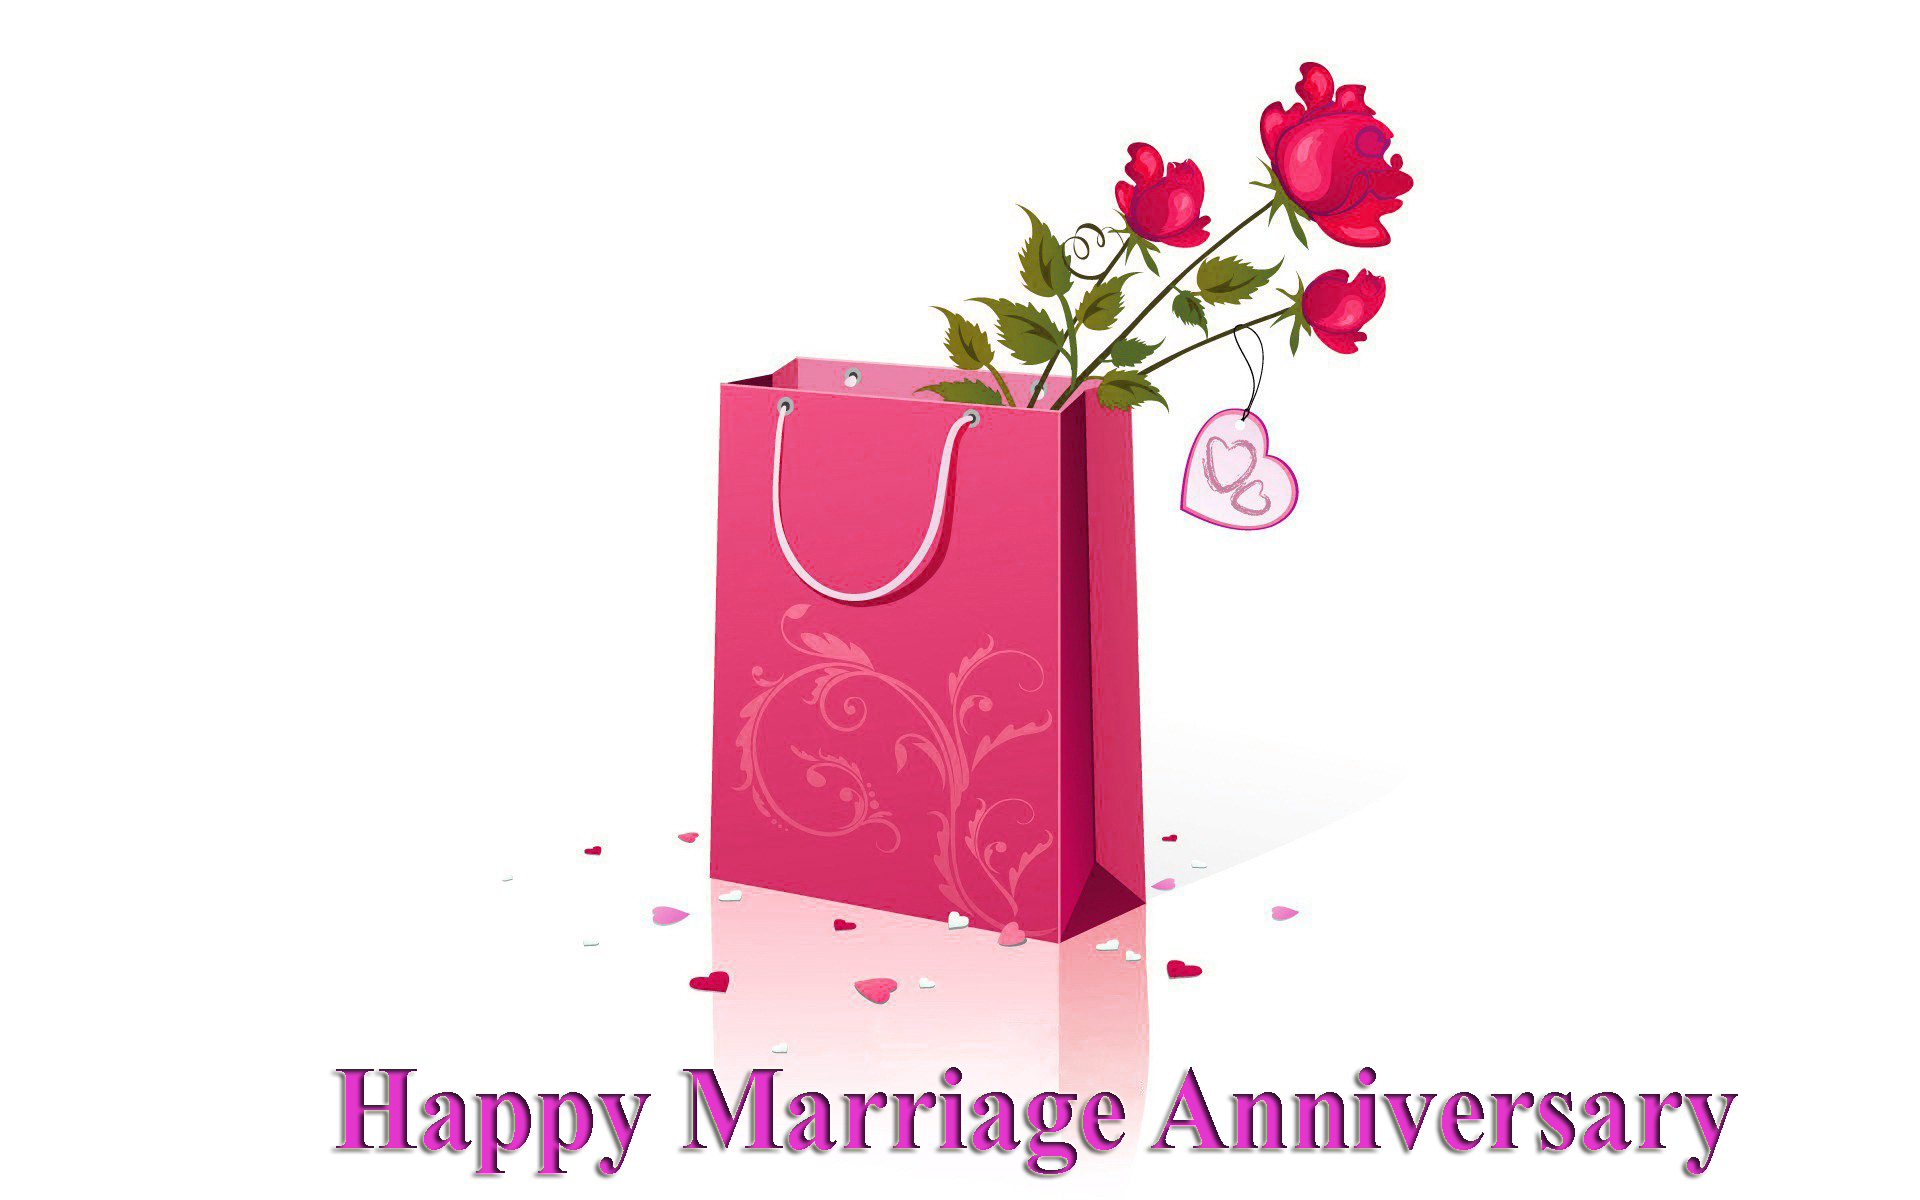 Best happy wedding anniversary wishes images cards for Best gift for marriage anniversary